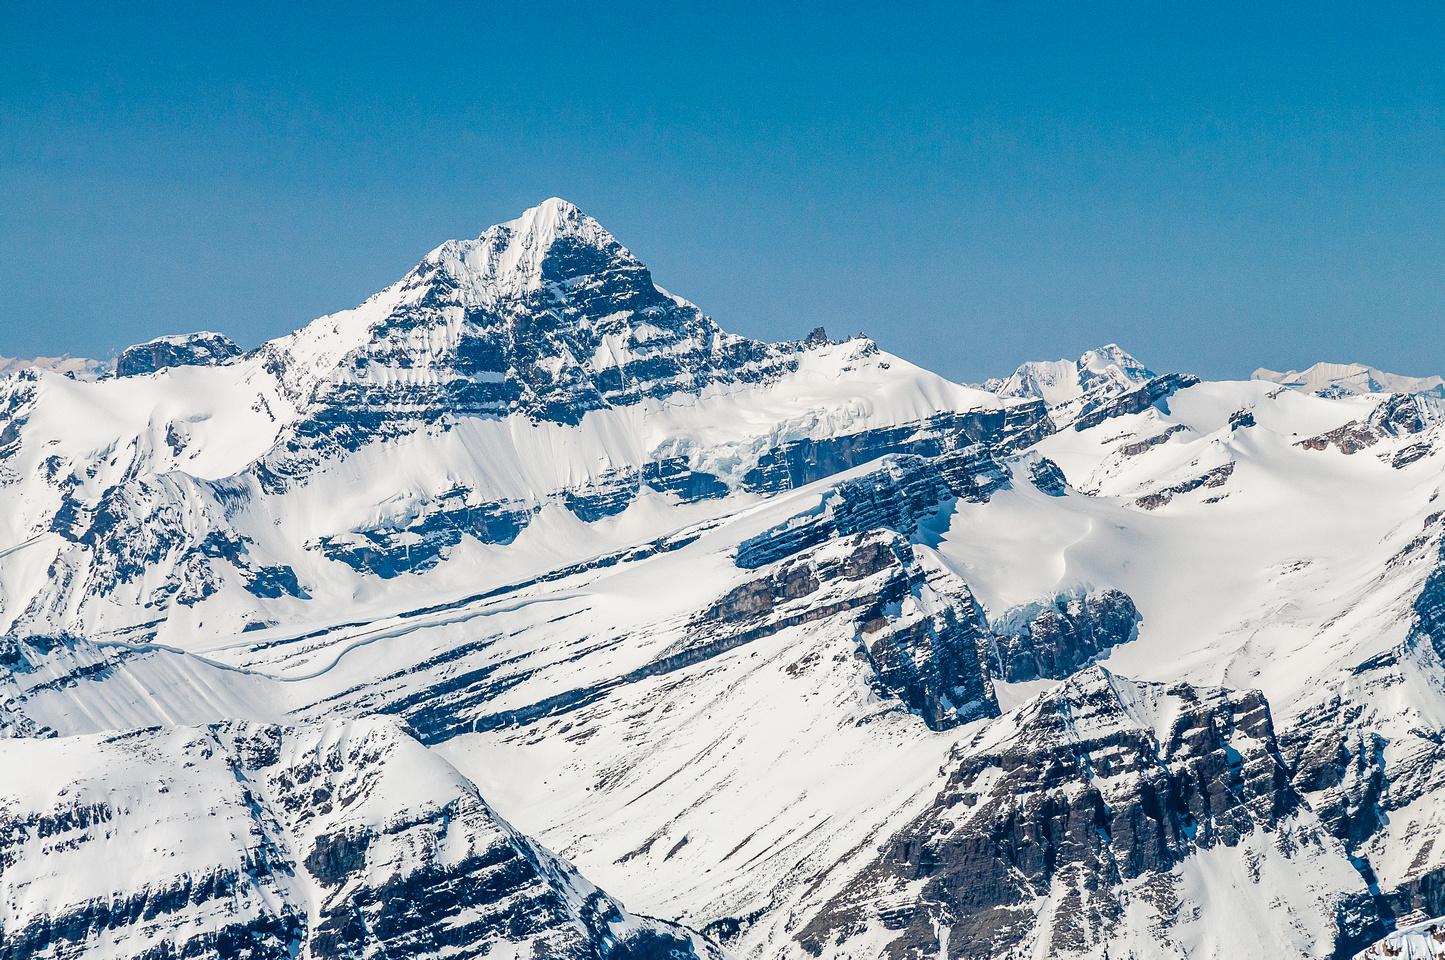 Mount Forbes is the highest peak in Banff National Park.